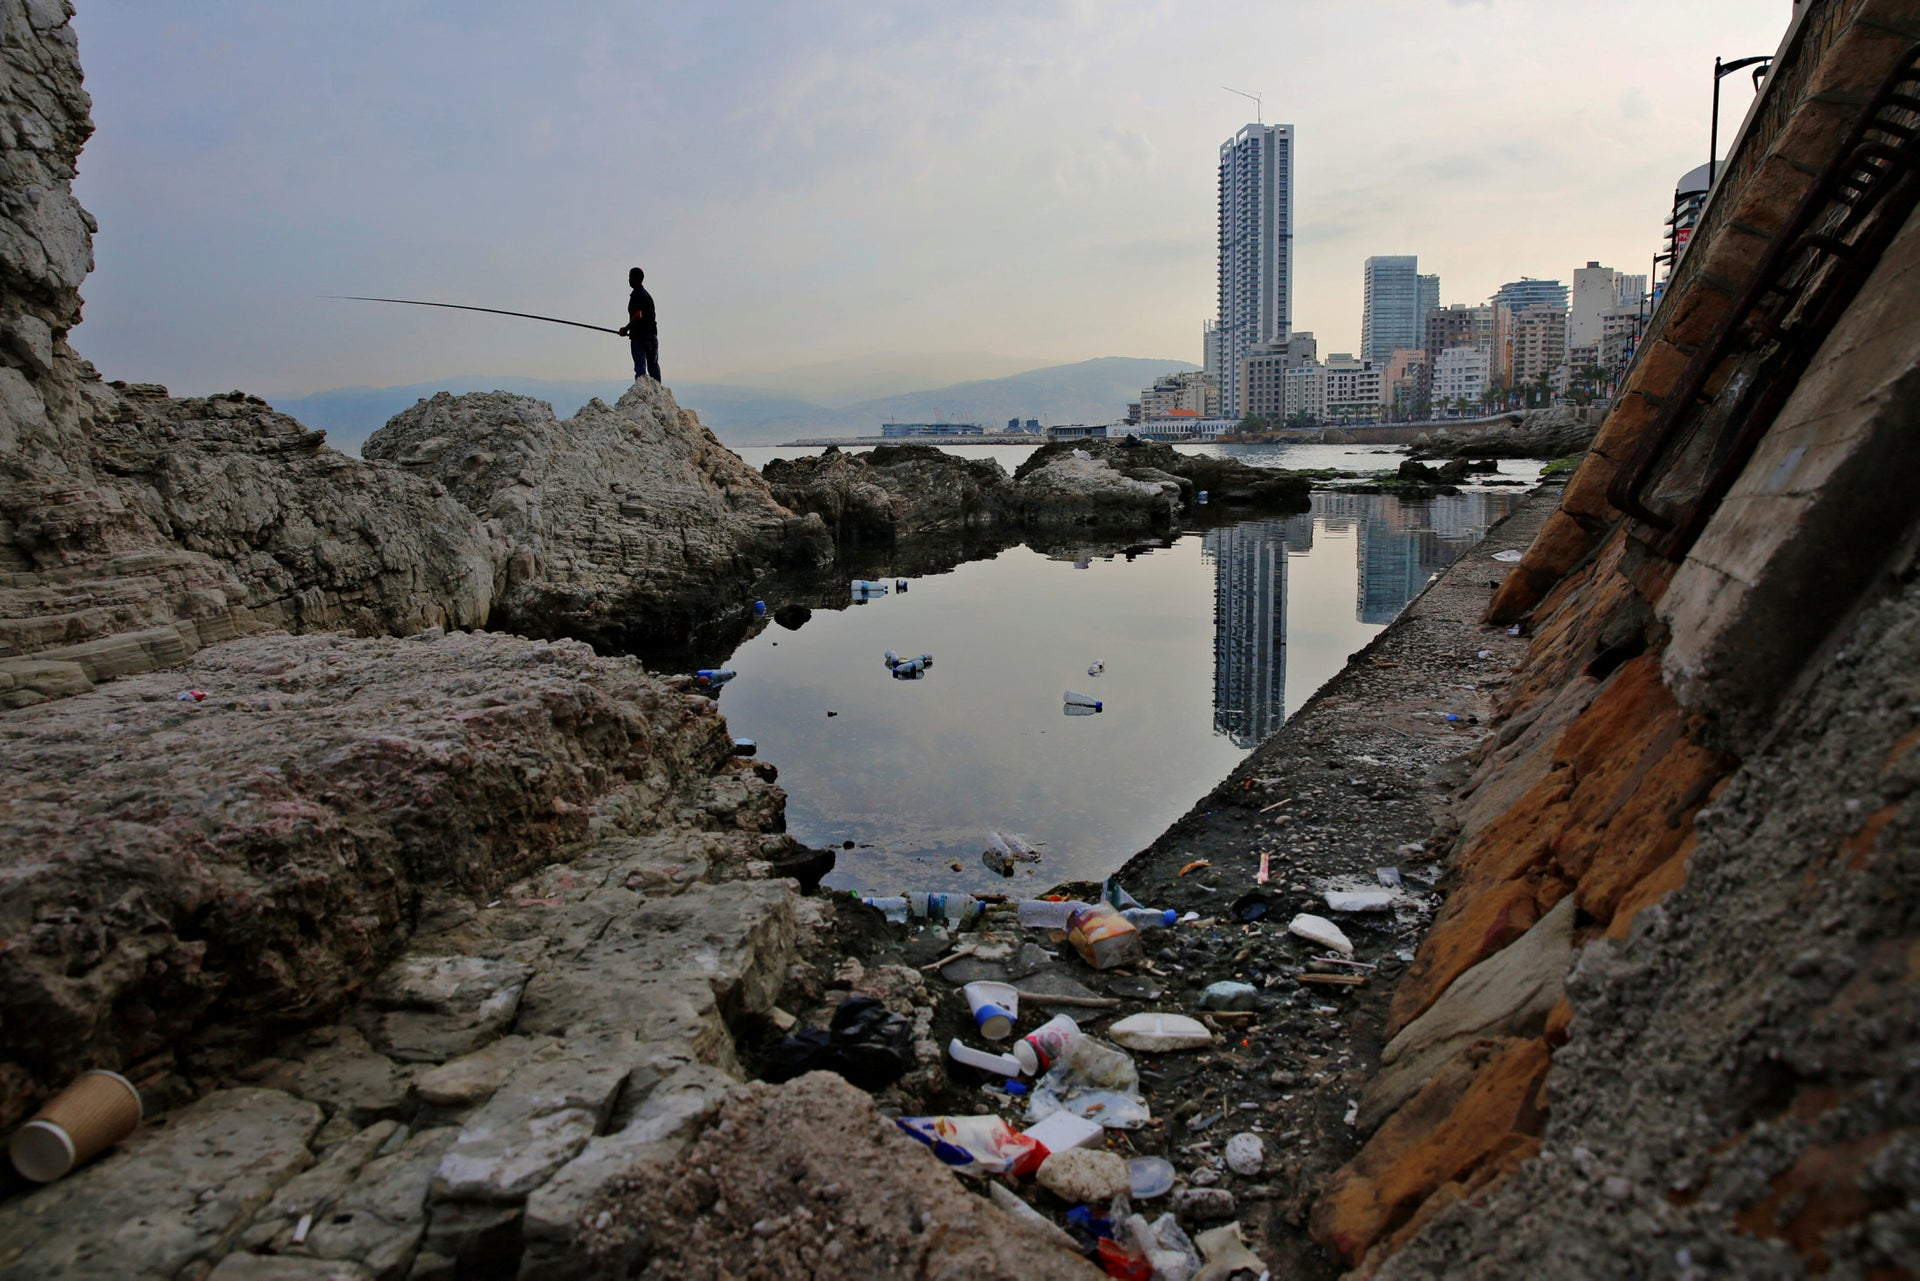 "In this Wednesday, Nov. 14, 2018 photo, a man casts his fishing pole in the Mediterranean Sea as trash are seen on a rocky coastal area along the Beirut coastline, Lebanon. Fisherman Ahmad Obeitri, who has been a fixture at Lebanon's corniche for the past 30 years, says the trash is killing off what's left of marine life. ""These days if a fish comes our way it will only find nylon bags, garbage and sewage to feed on,"" he said, lamenting the people who eat and drink as they walk on the corniche and then toss their cans, tins and other containers in the sea. ""You can open a cafe under water and invite your friends,"" he adds sarcastically."